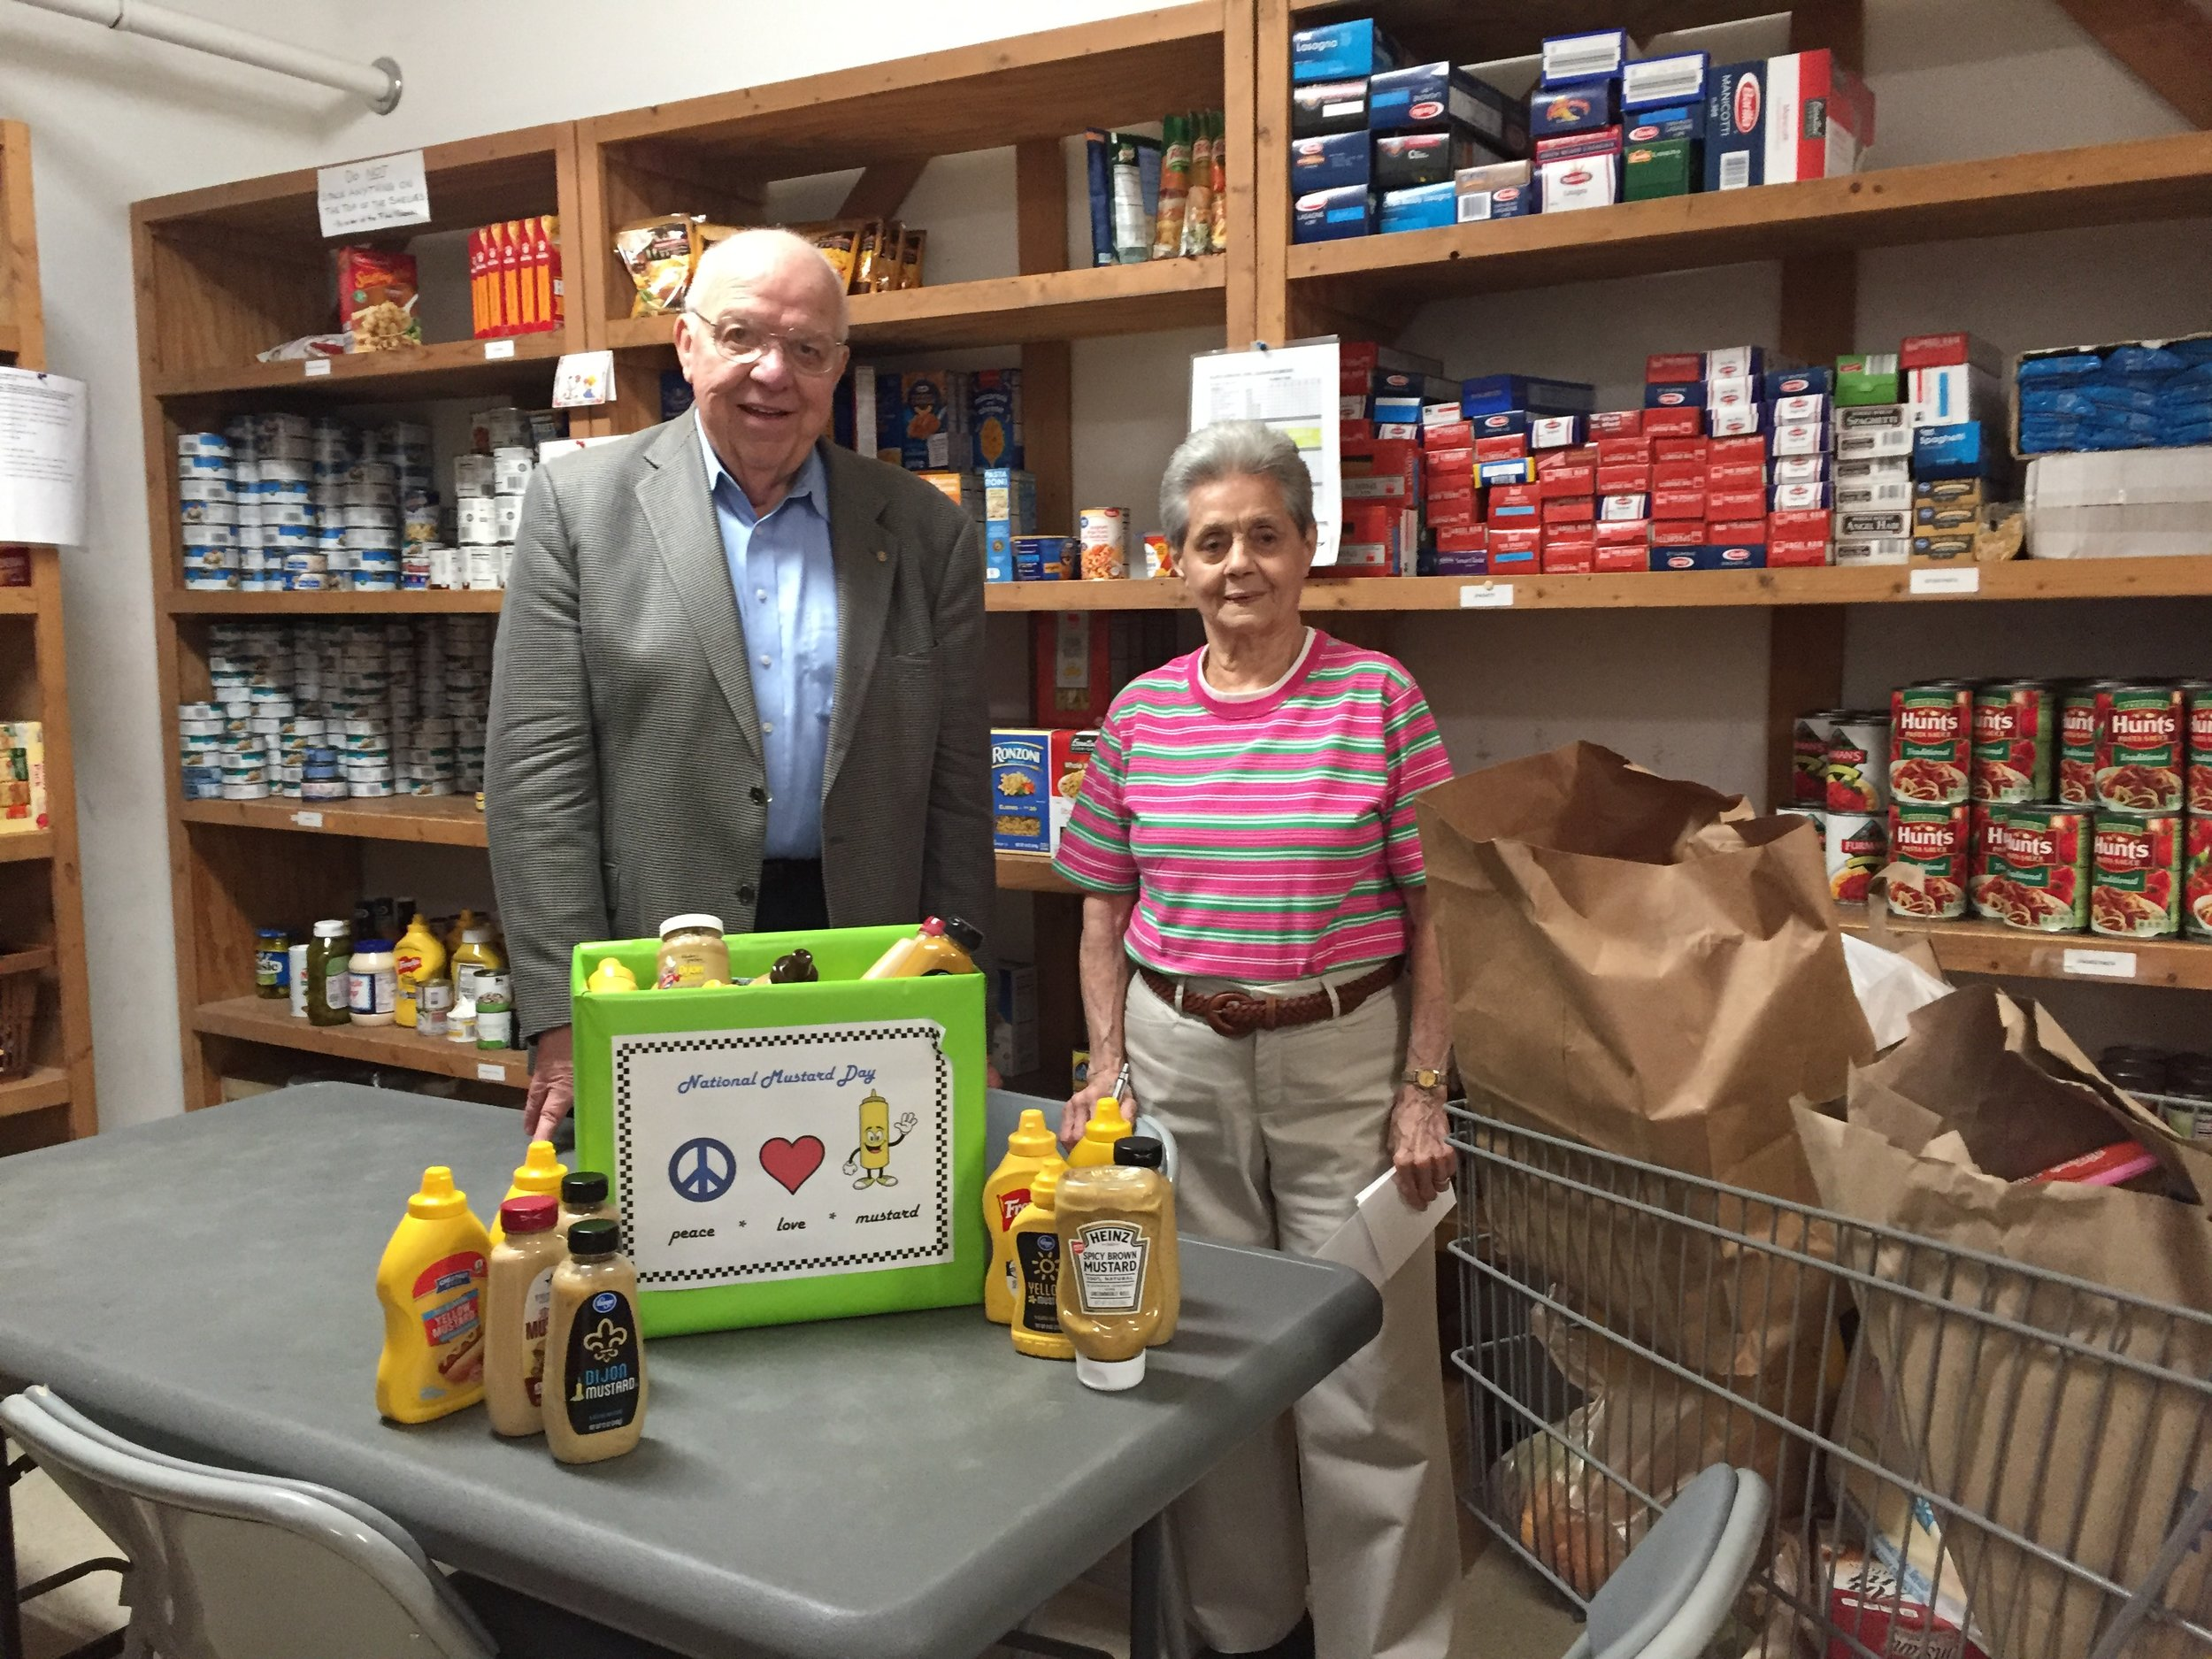 our donations at fish - Jim Johnson delivers carts full of donations to Billie Johnston at FISH each month.